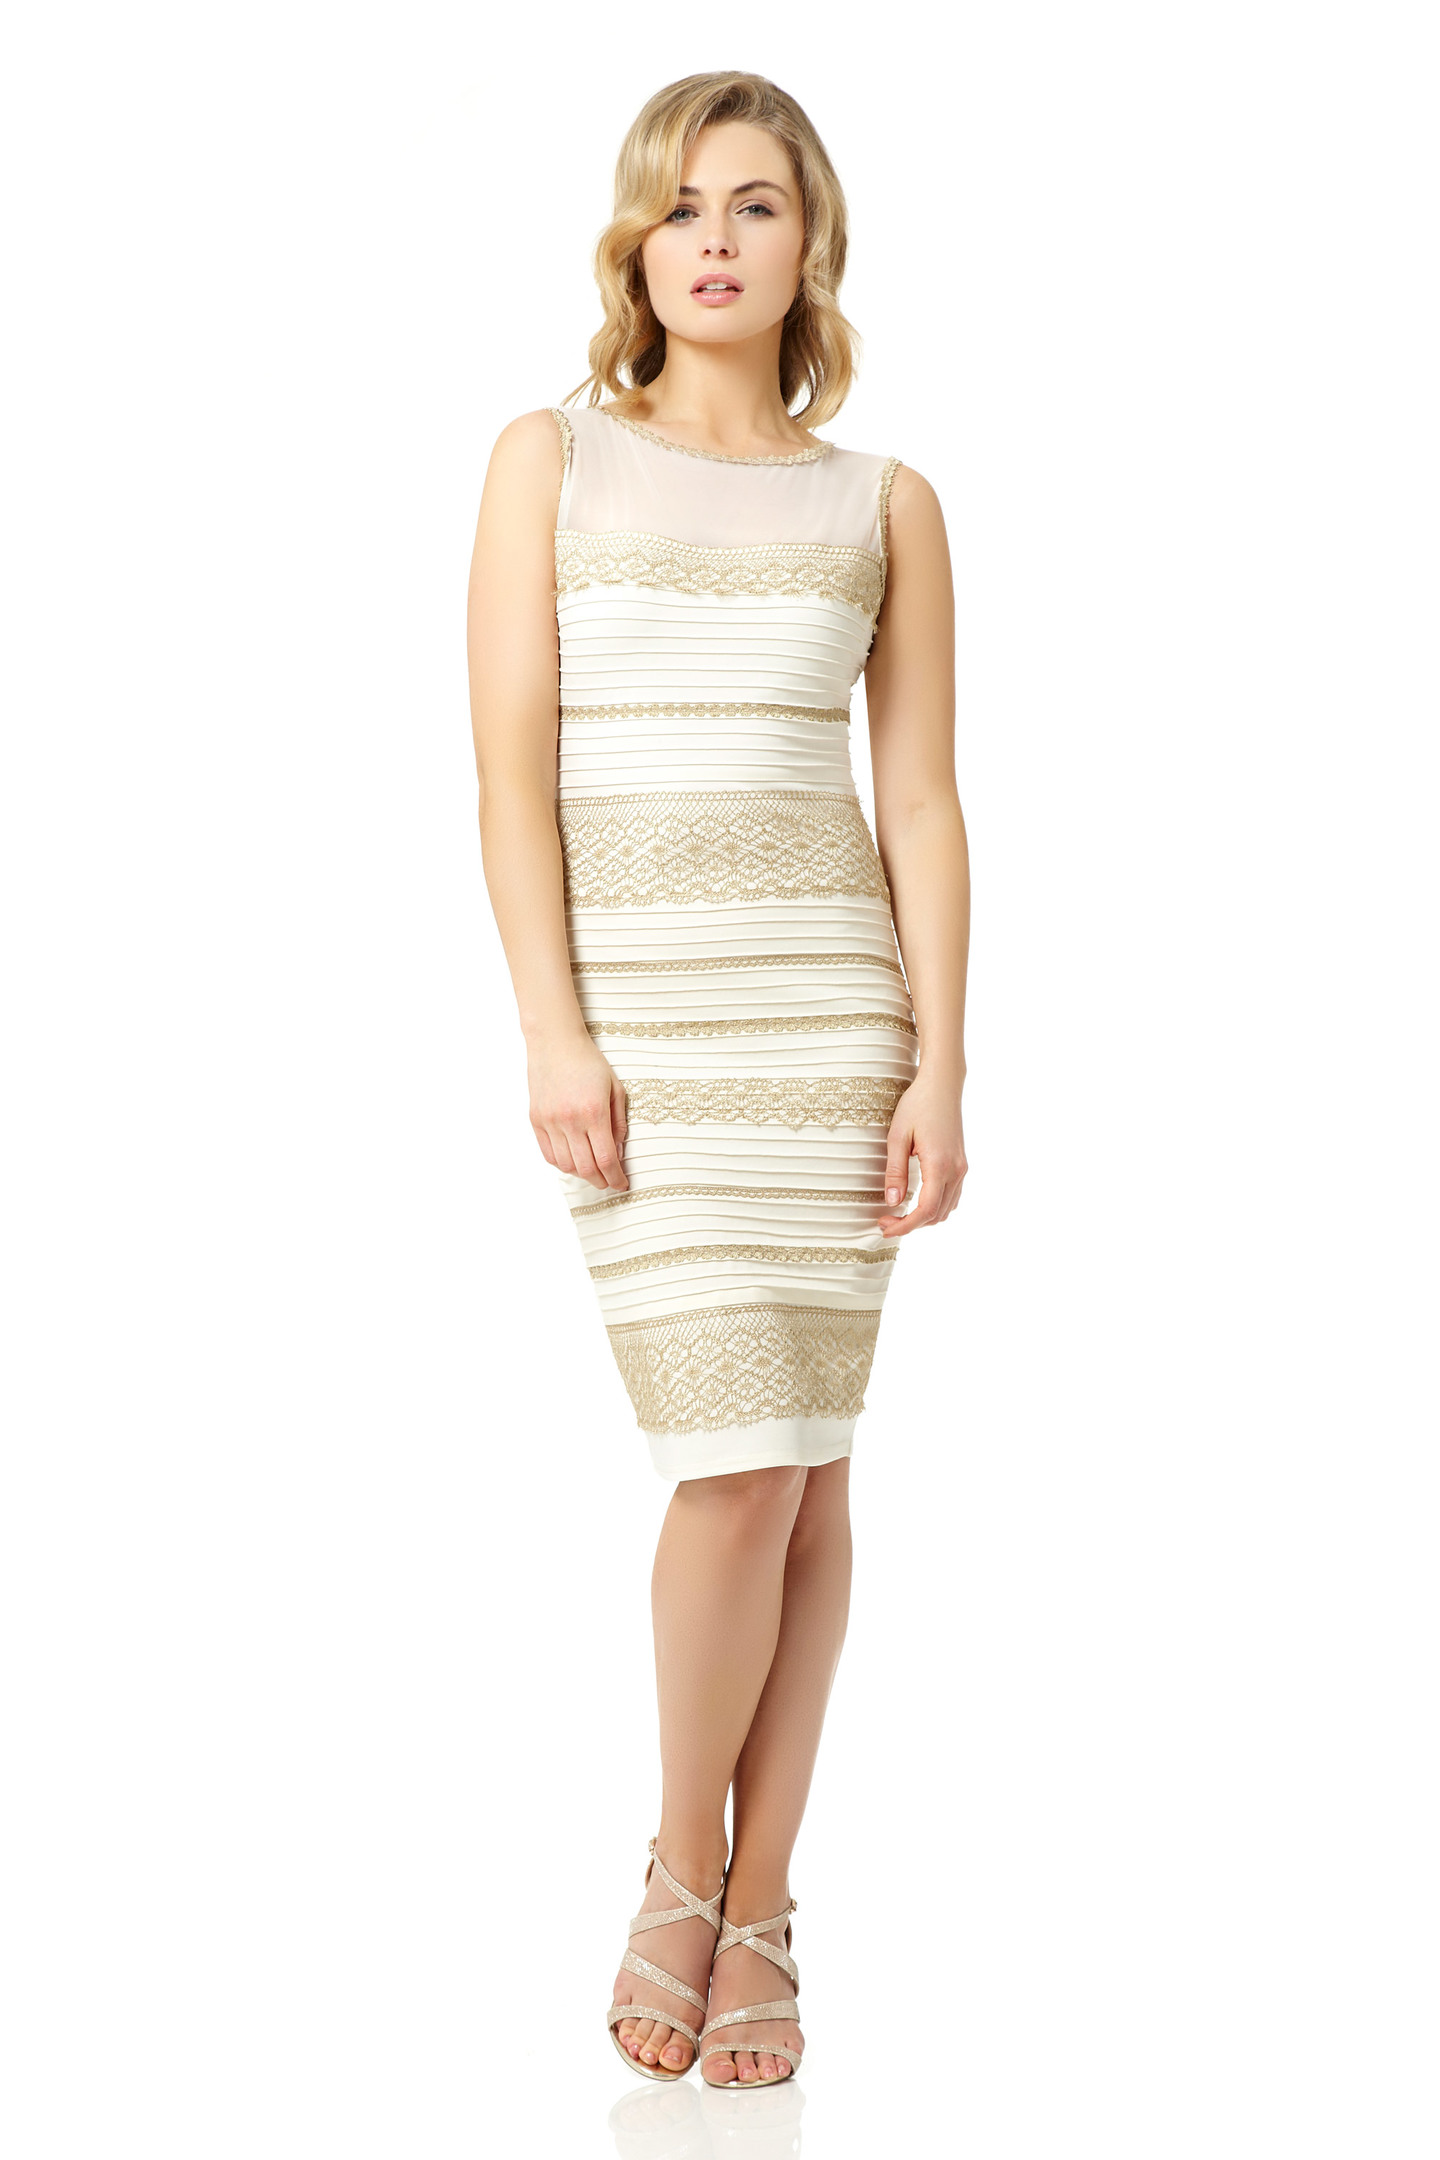 Makers of blue and black dress create a white and gold ...